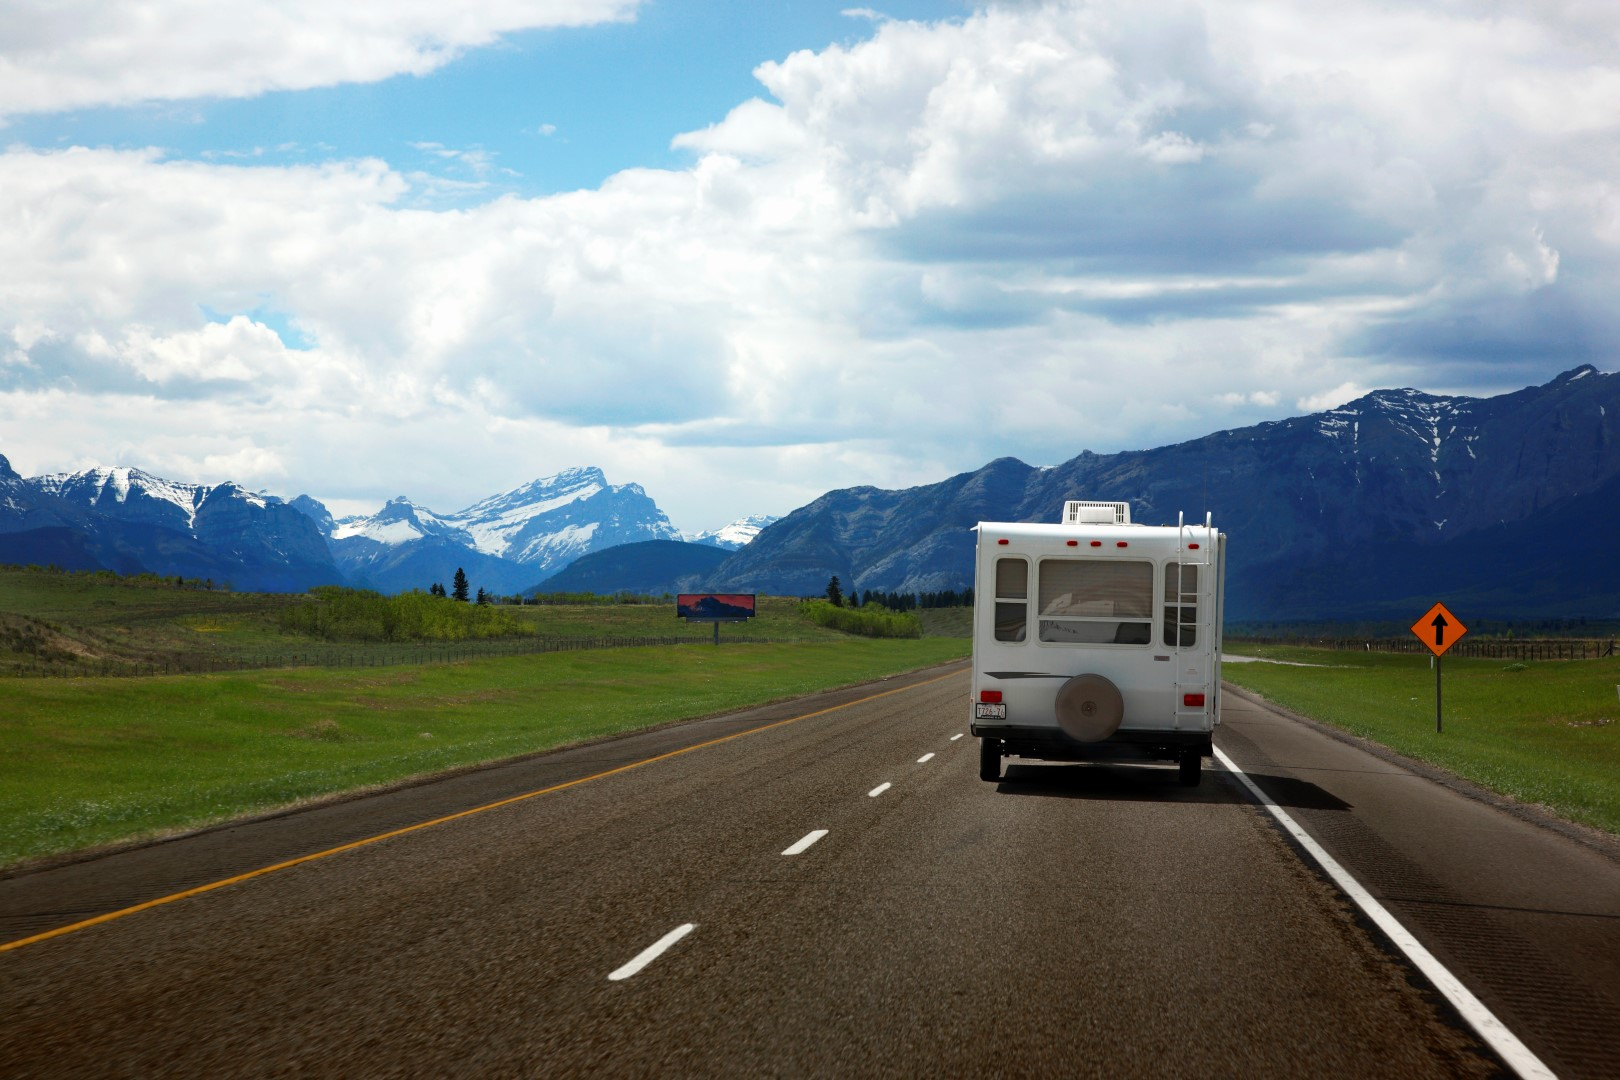 Rear view of a small RV being towed down a highway.